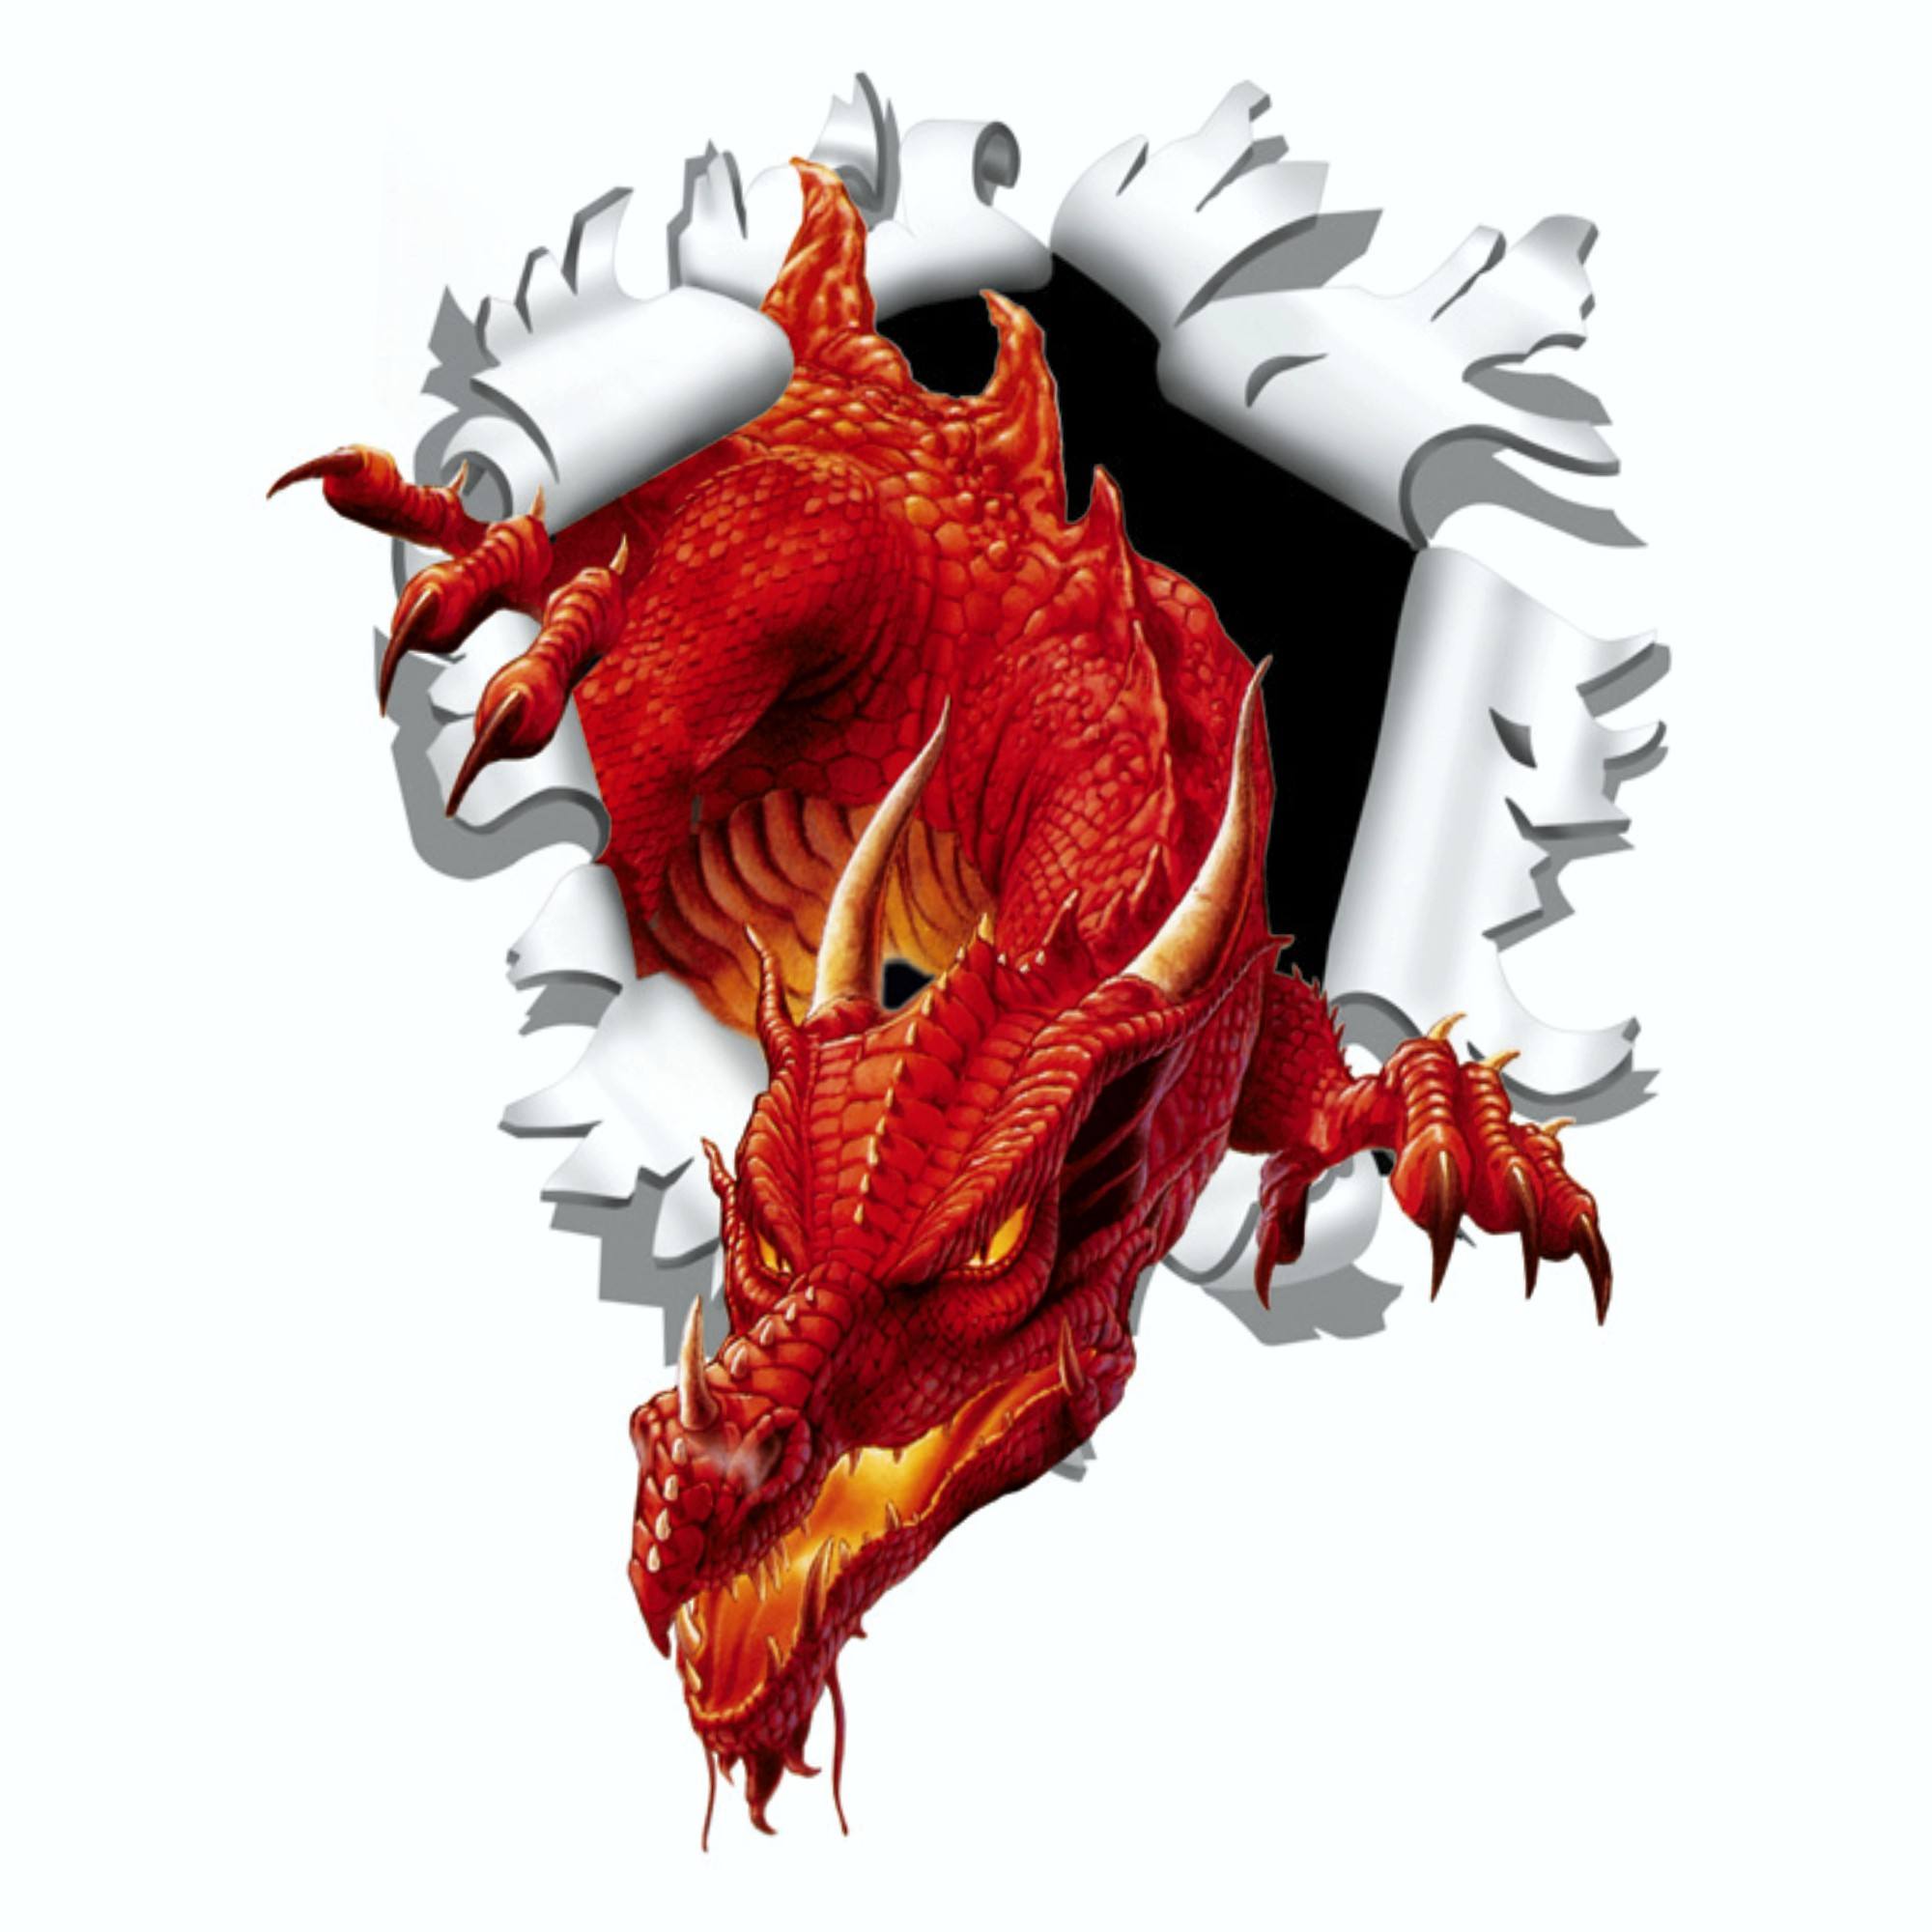 Sticker ripped torn bullet hole 90 mm motive dragon – Bild 1